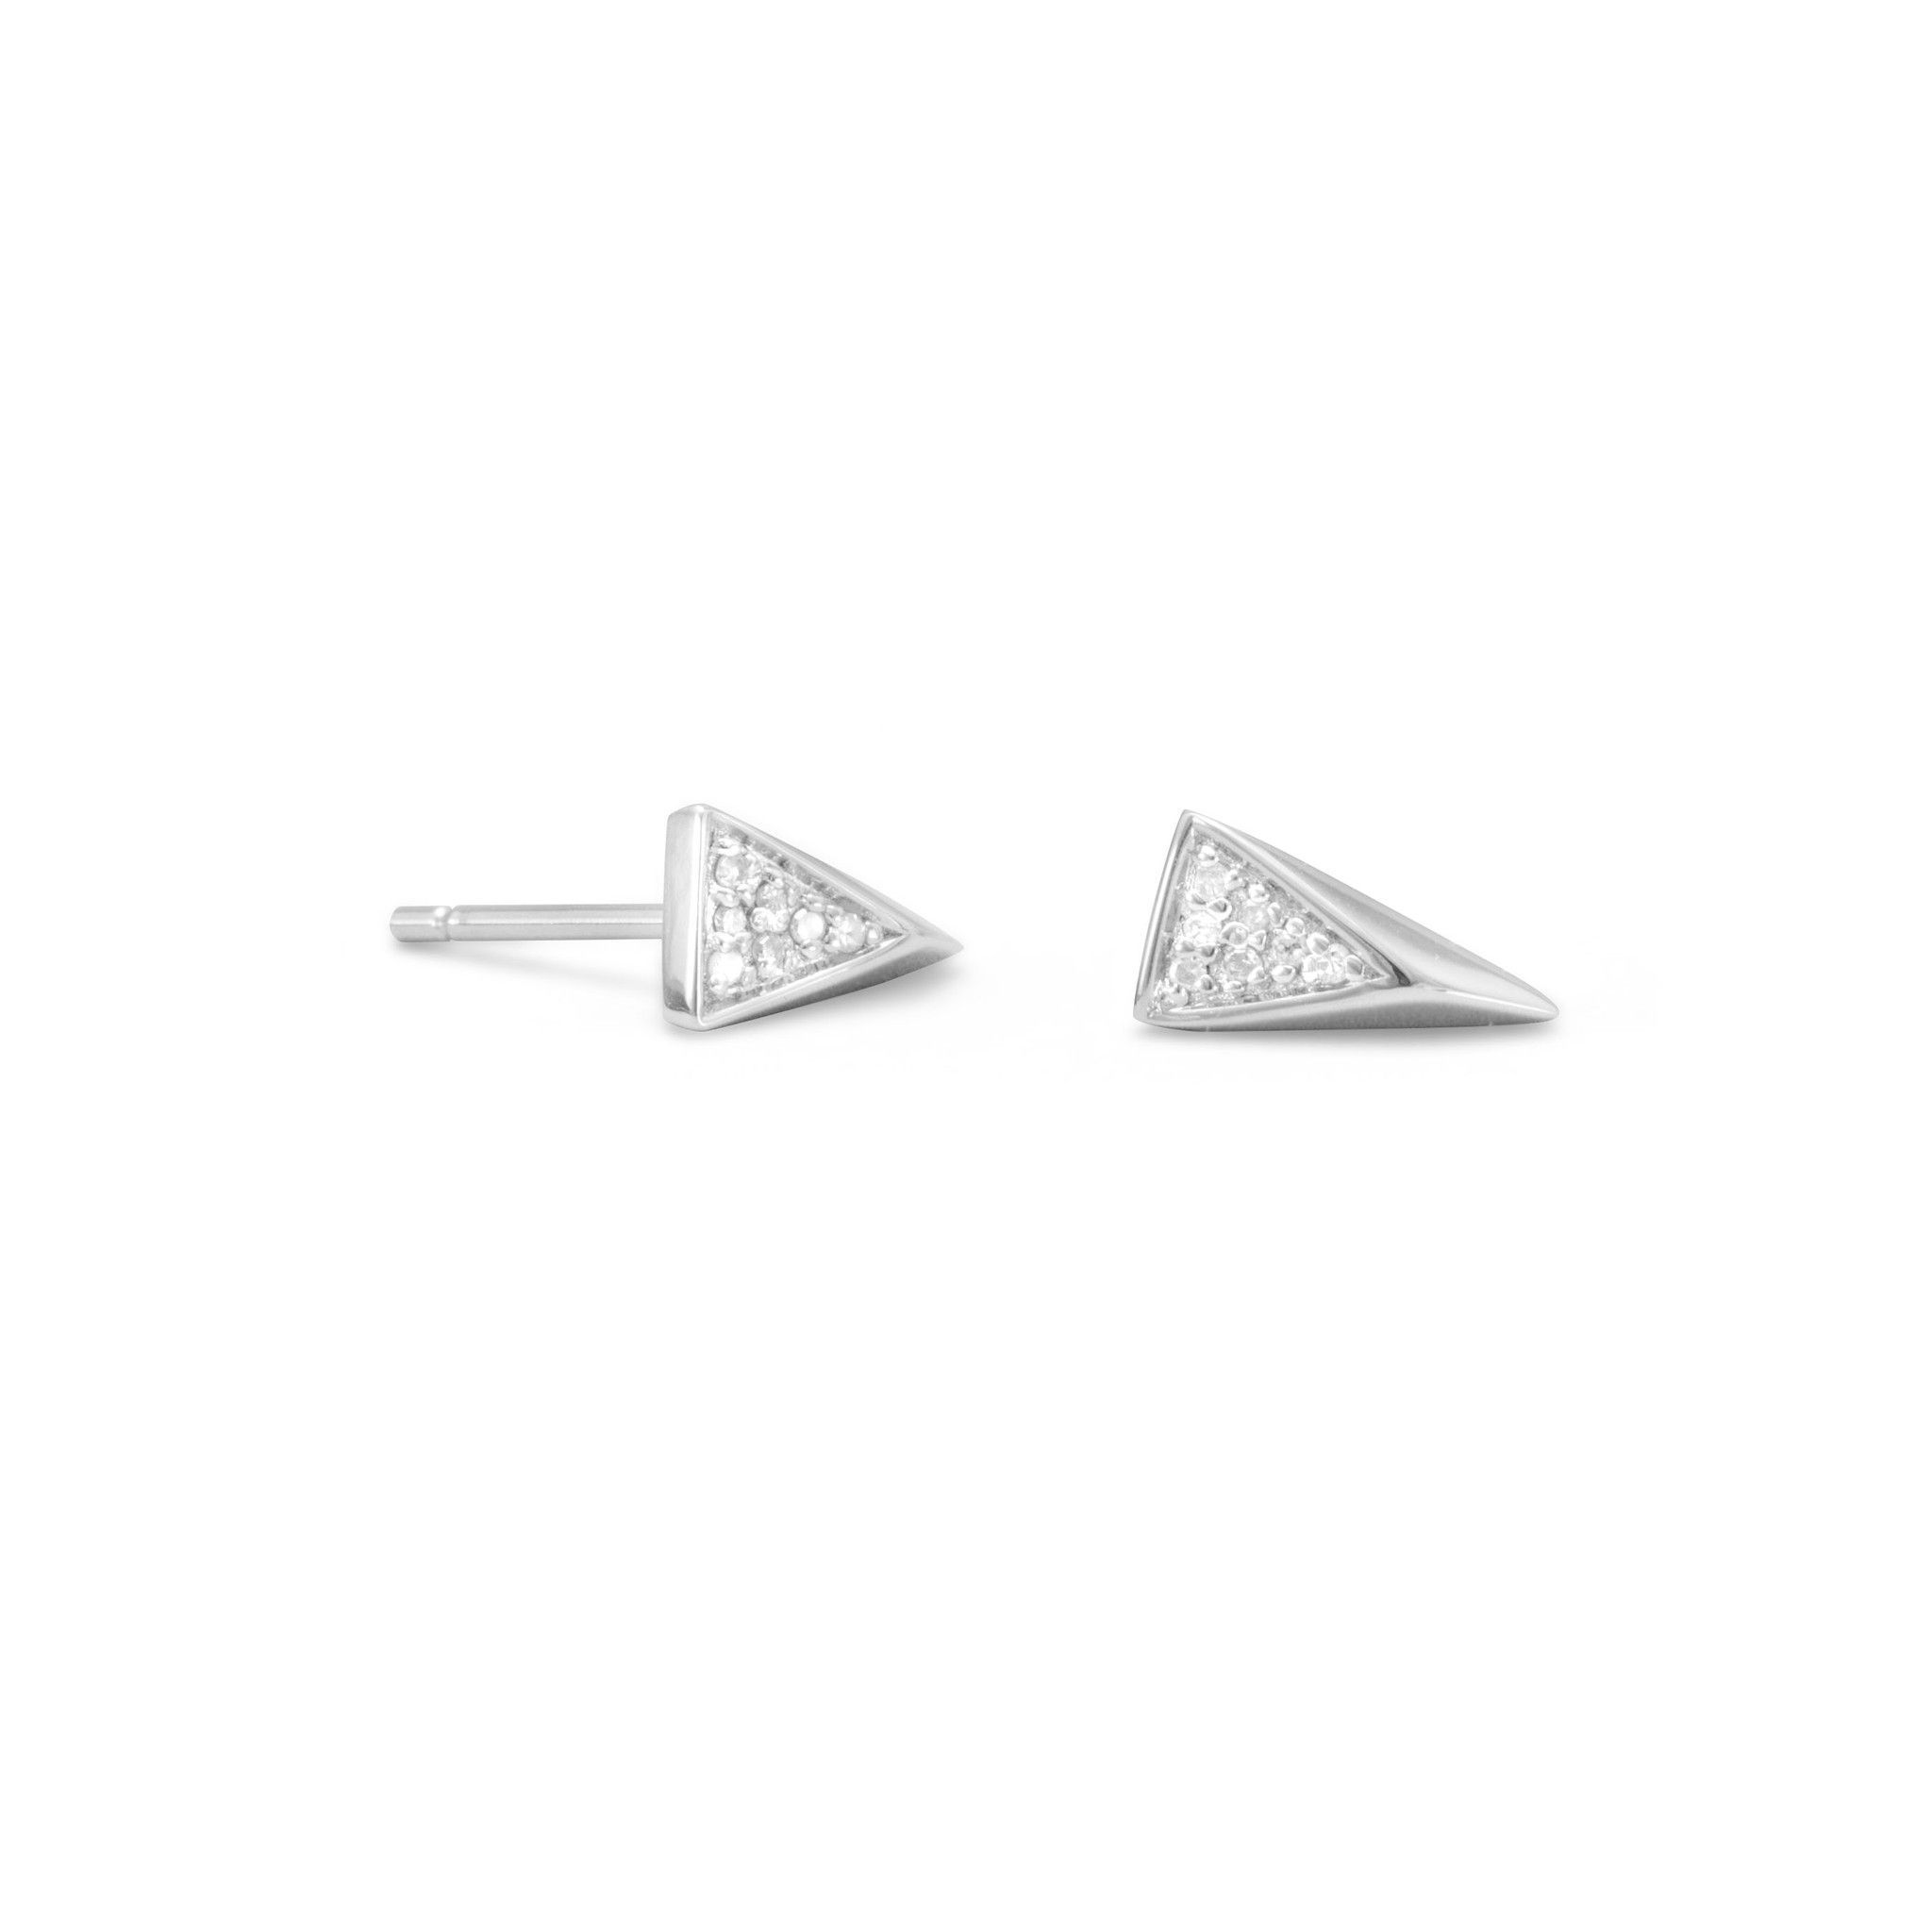 f020b8f0e Rhodium plated sterling silver small diamond triangle stud earrings, .04  ctw. Each triangle is approximately 5mm x 9.5mm with 7 I2 single cut  diamonds.